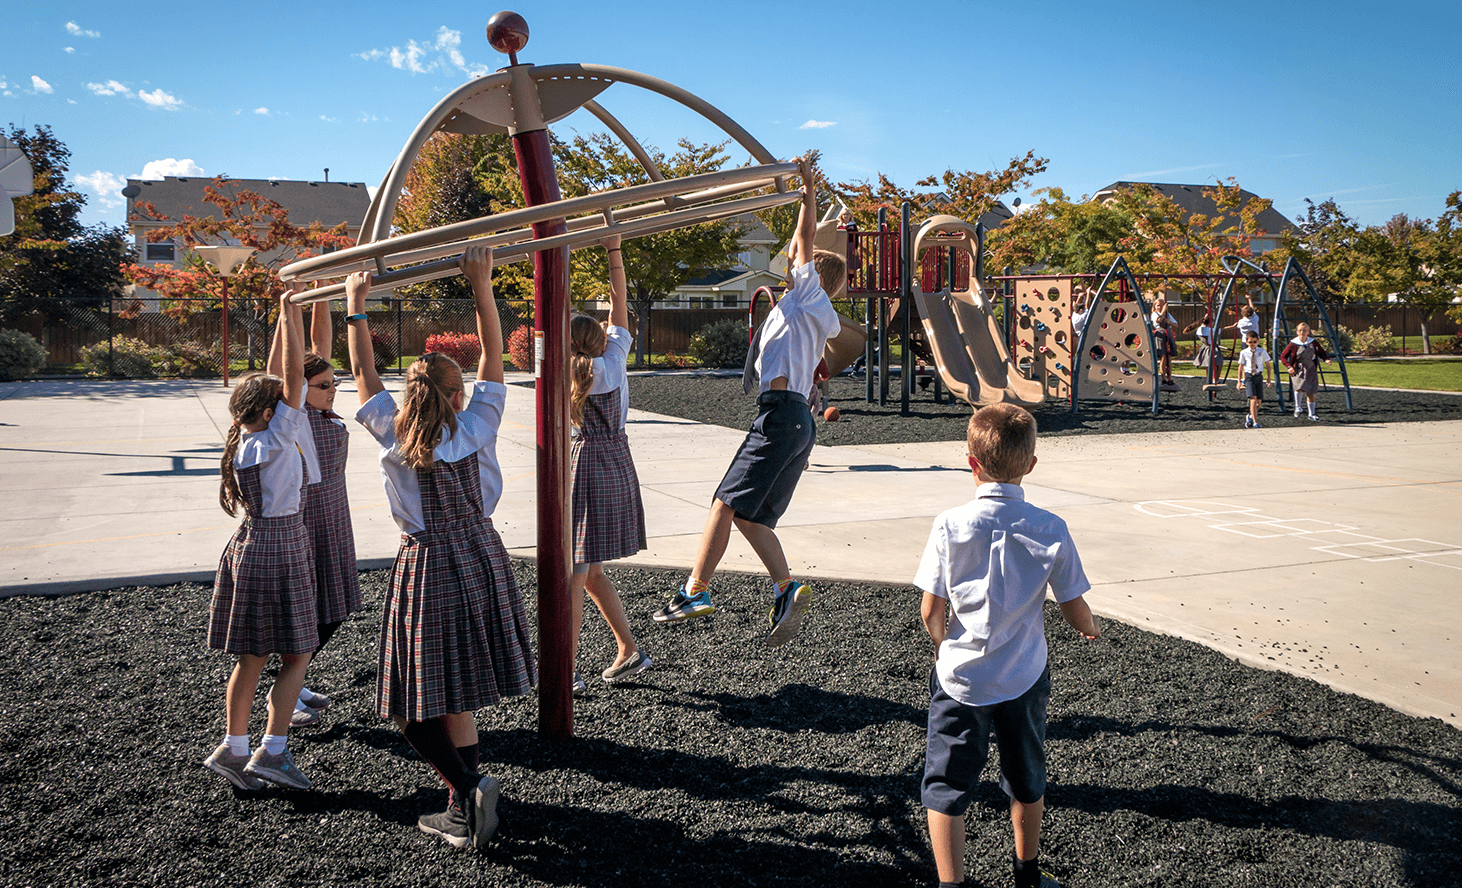 Elementary School Playground | Challenger School - Everest | Private School In Meridian, Idaho